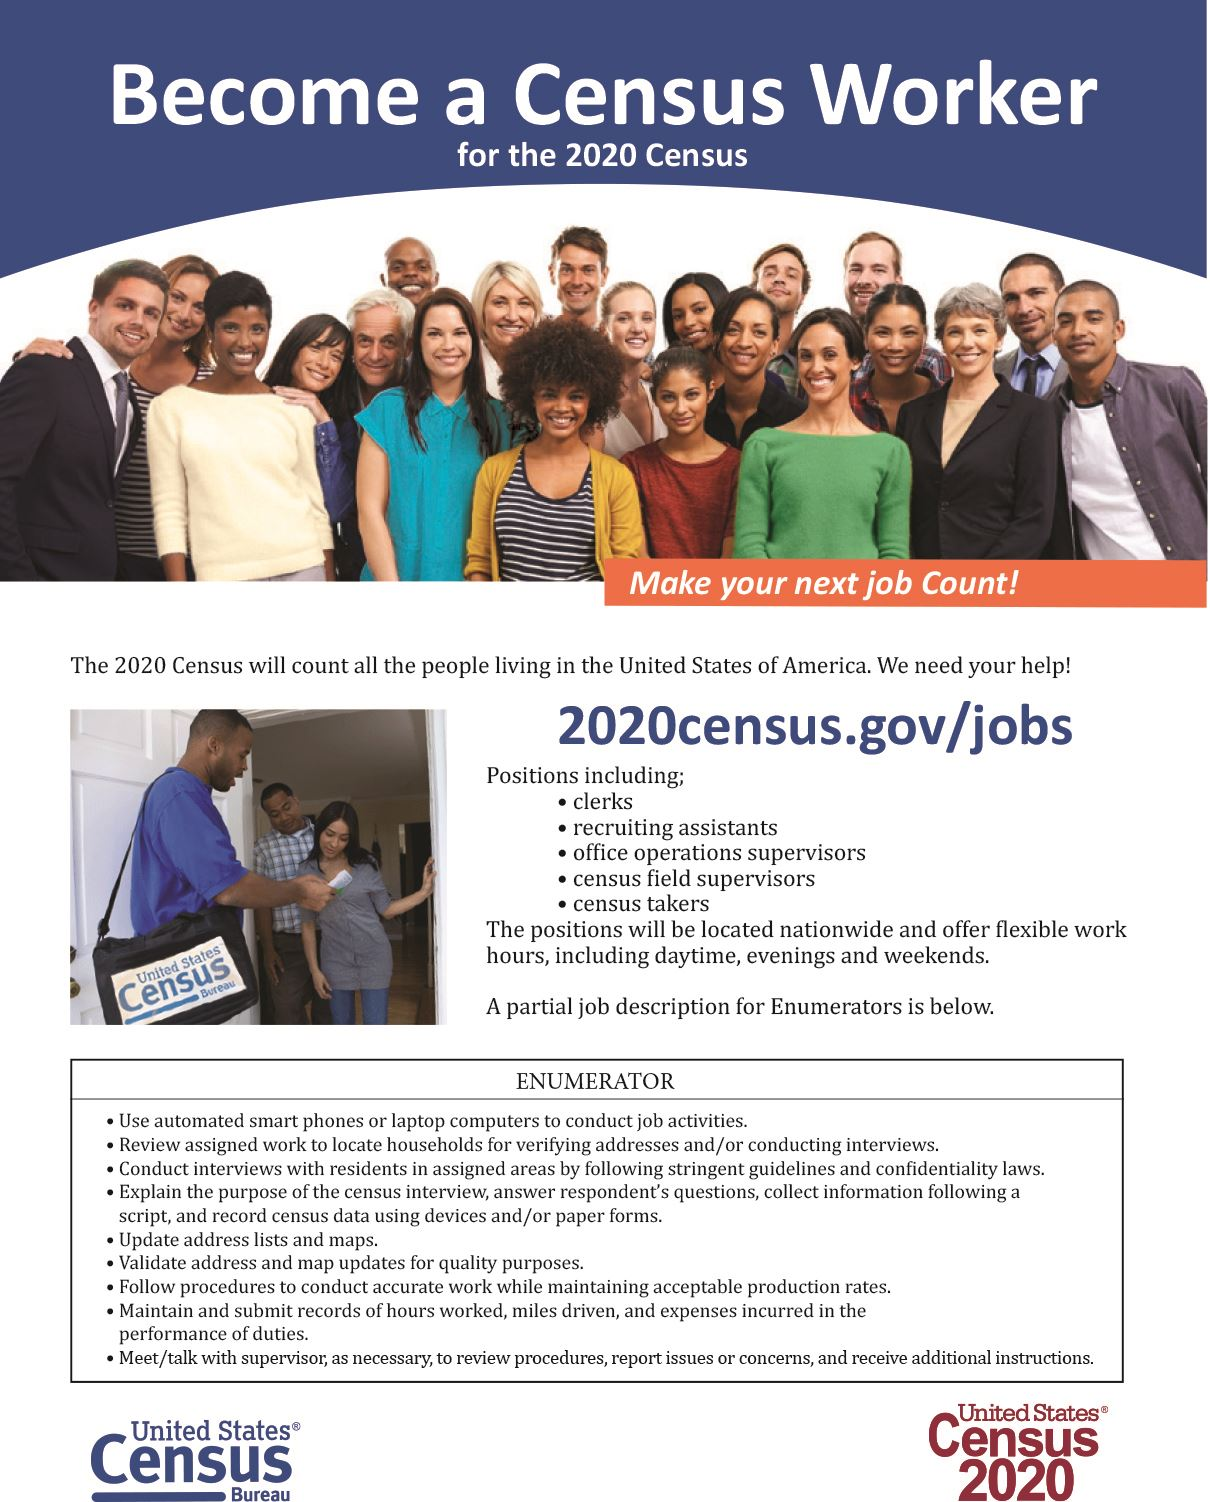 Become a Census Worker